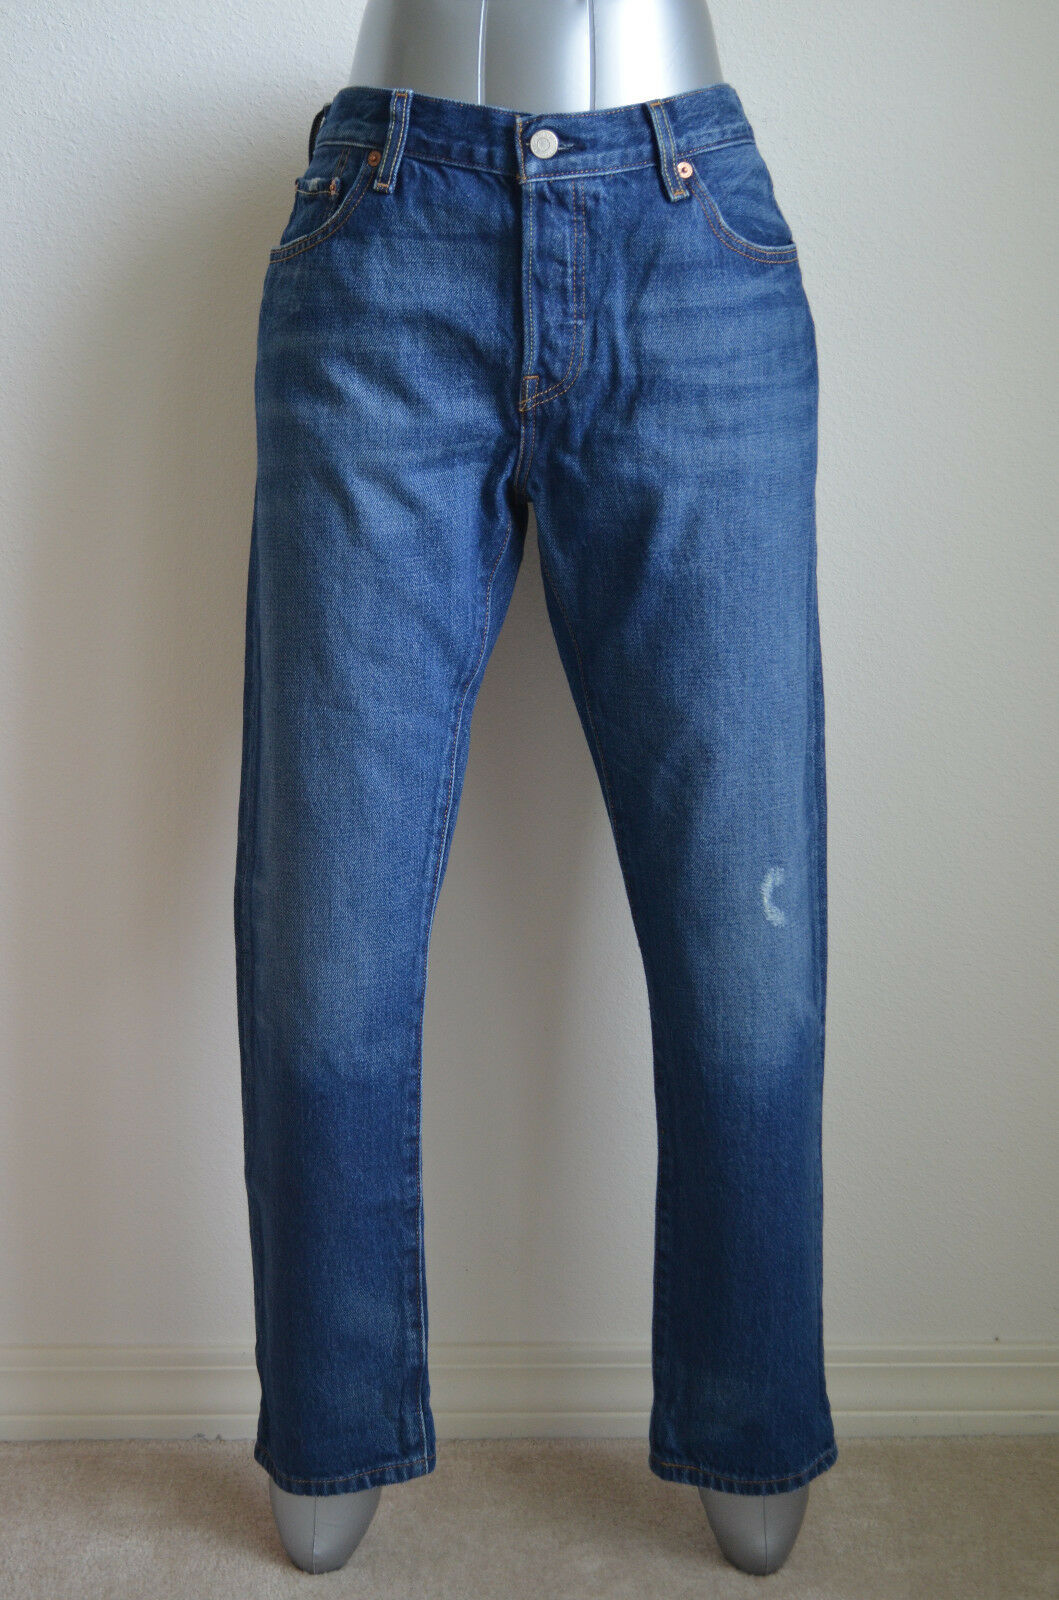 Levi's 501 CT Jeans for Women Cali Cool NWT Style 178040002